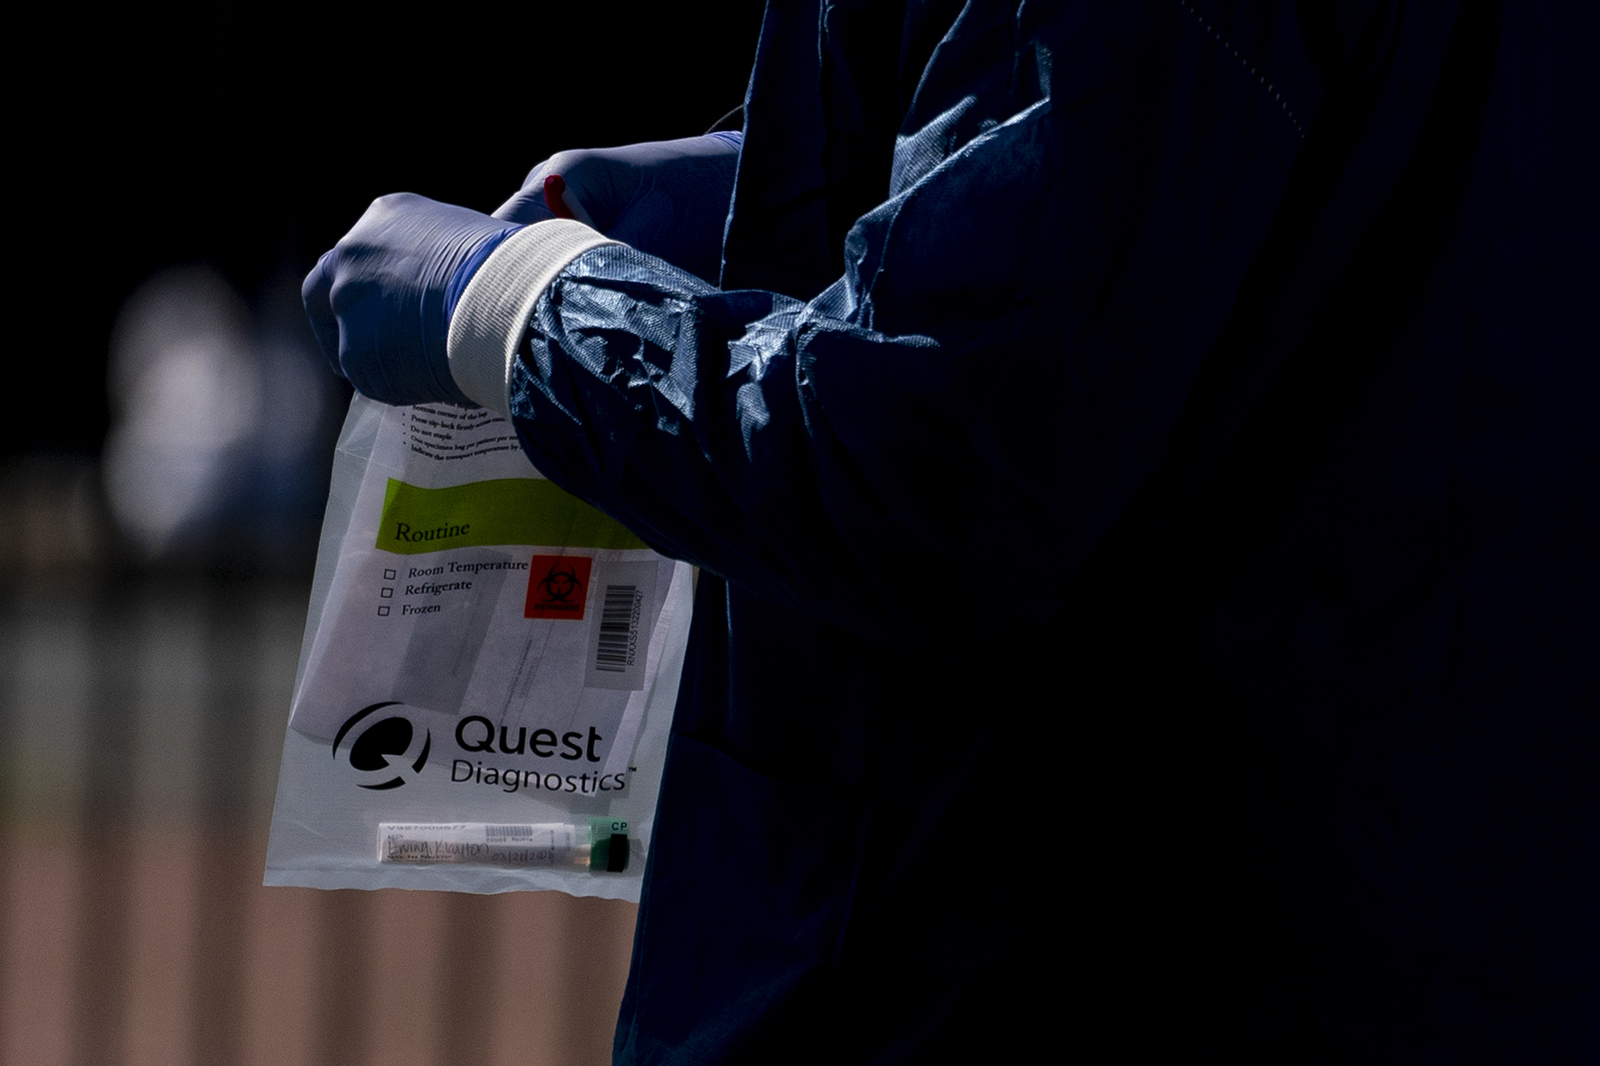 A Children's National Hospital healthcare worker holds a Quest Diagnostics bag containing a Covid-19 swab at a coronavirus drive-thru testing site at Trinity Washington University in Washington, D.C., on Thursday, April 2, 2020.